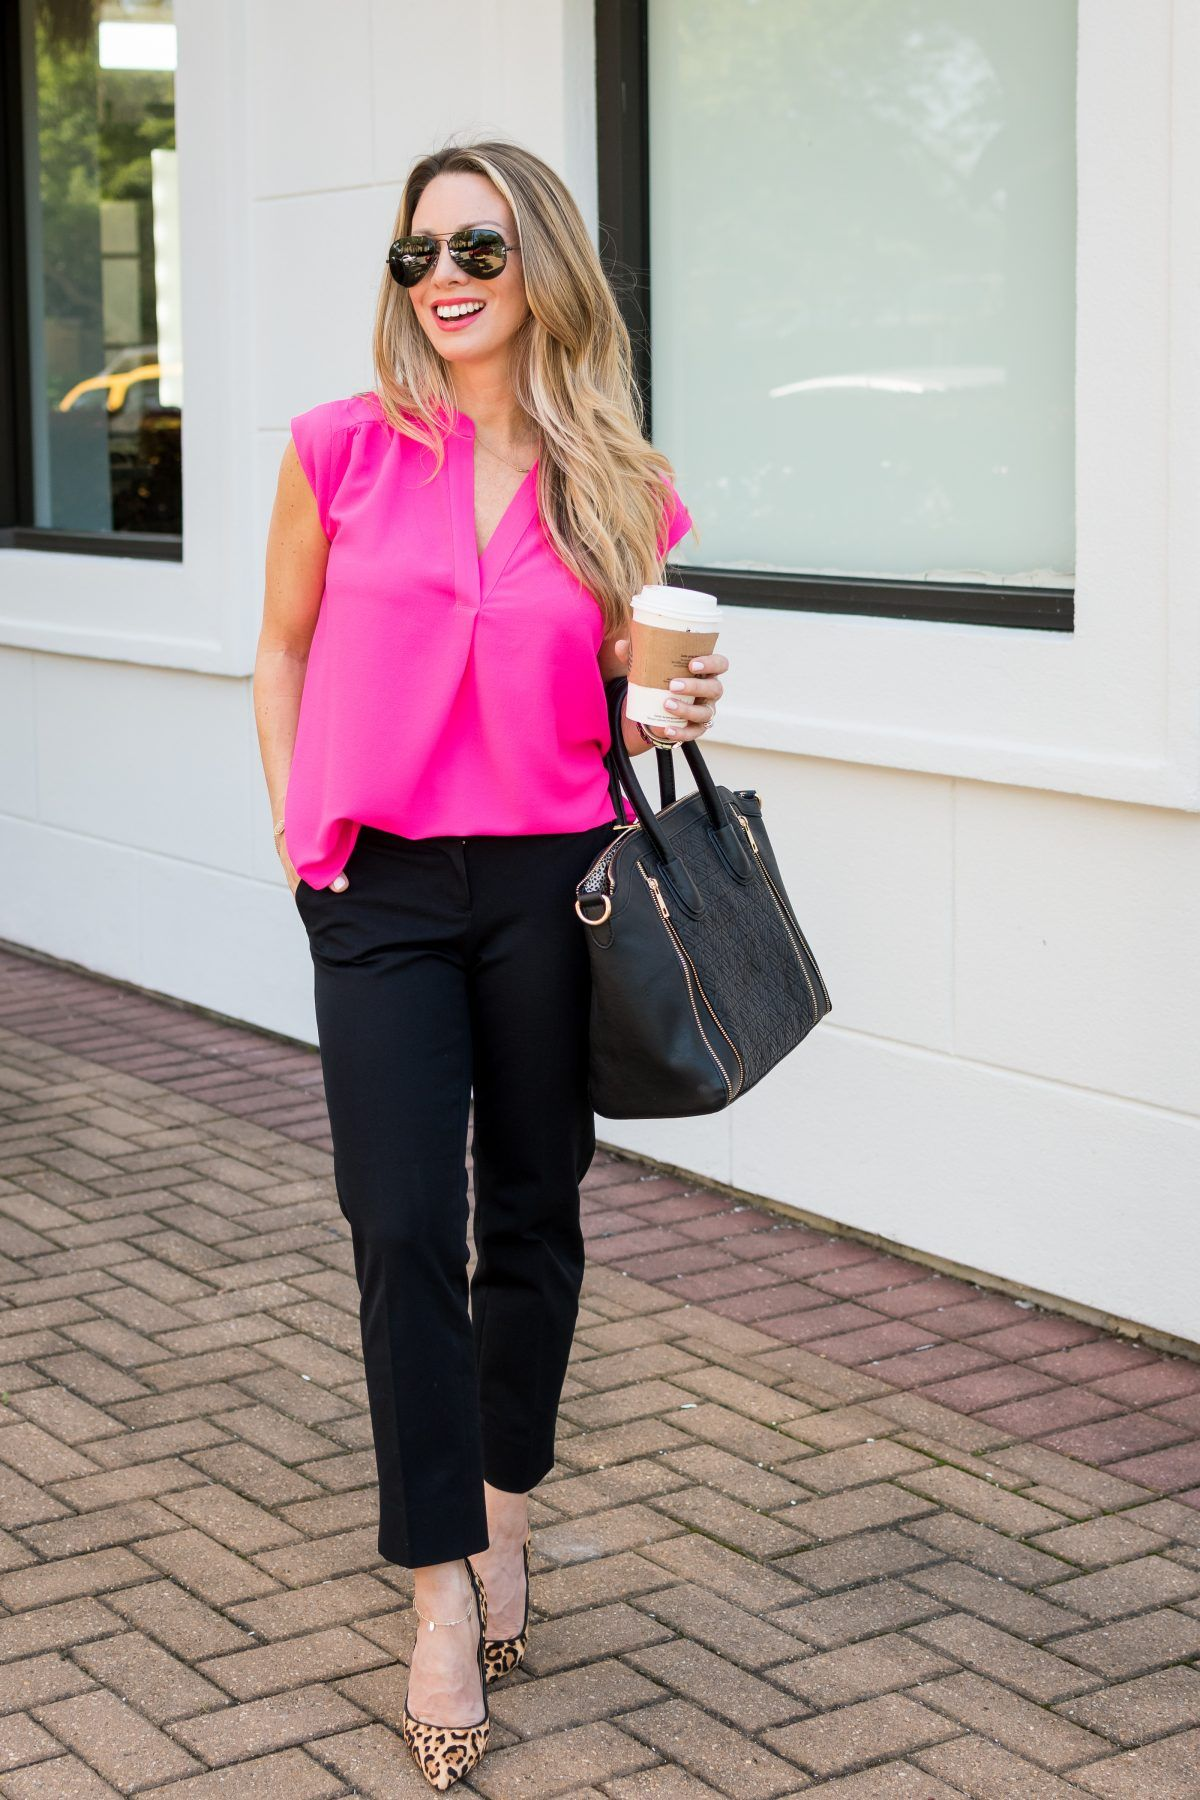 Work Weekend Wow How To Style Your White Blazer For Work Honey We Re Home Pink Top Black Pants White Blazer Women Pink Top Outfit [ 1800 x 1200 Pixel ]